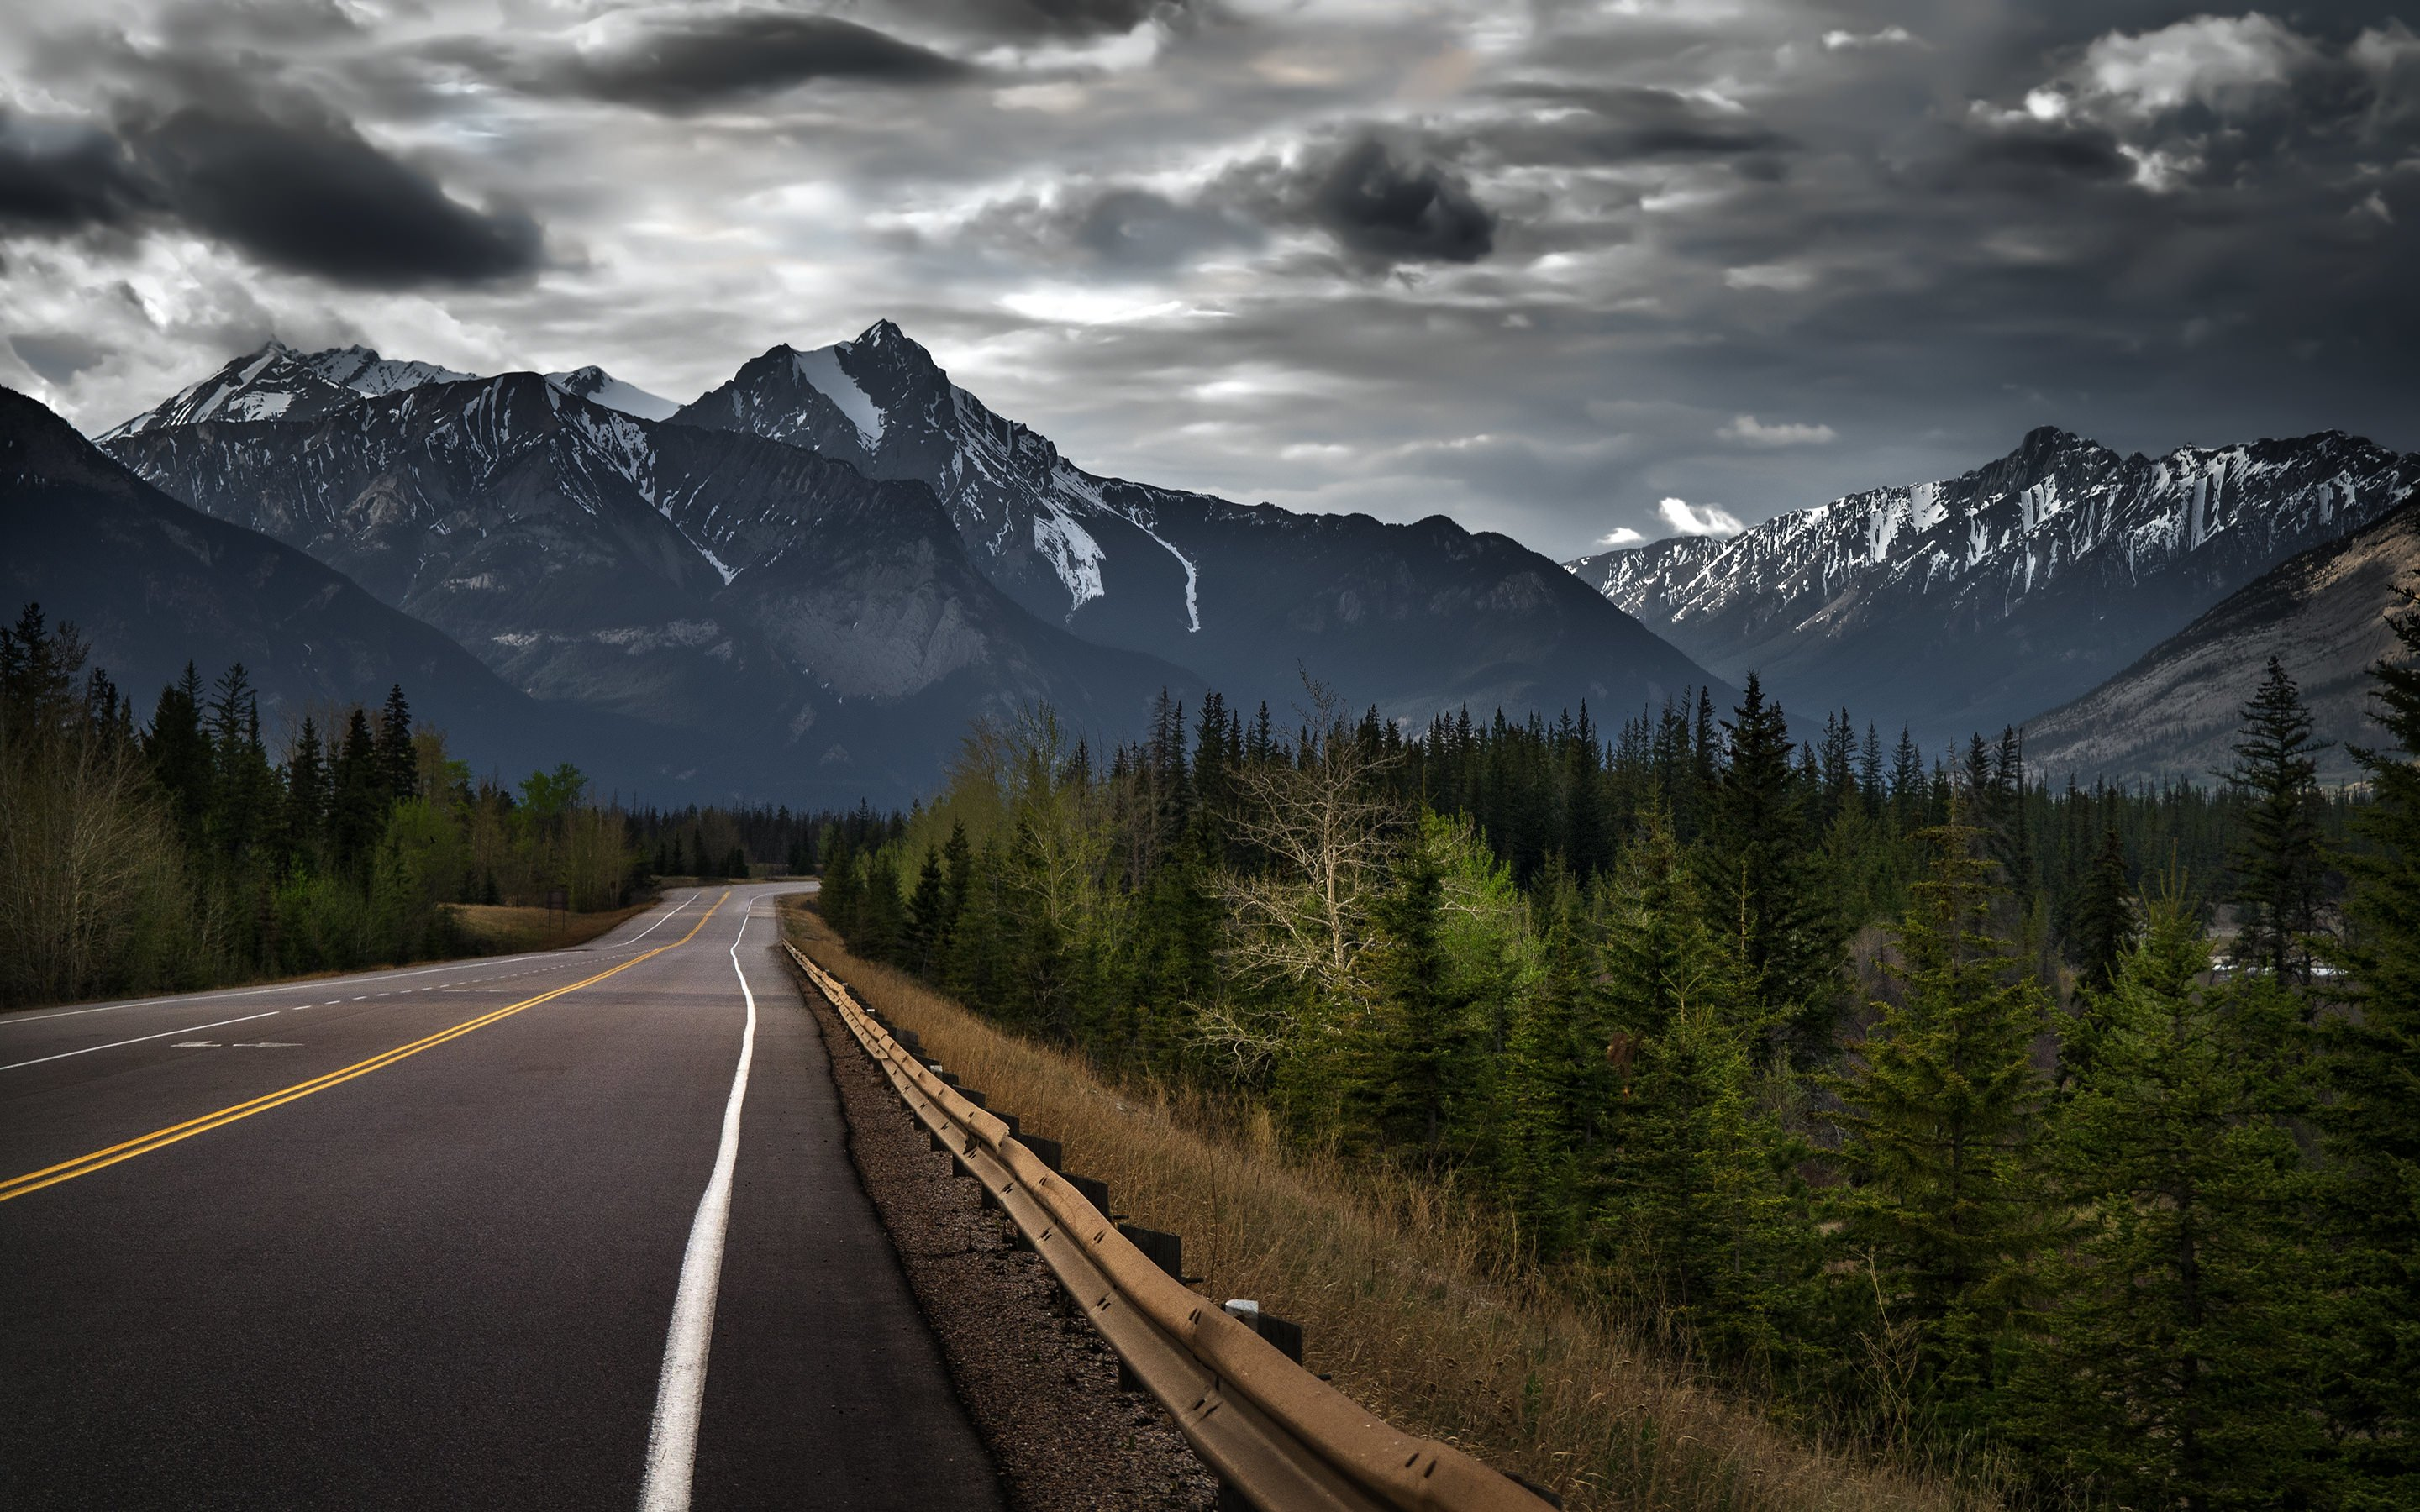 Road trip on a stormy day, Canada Wallpaper for Desktop 2880x1800